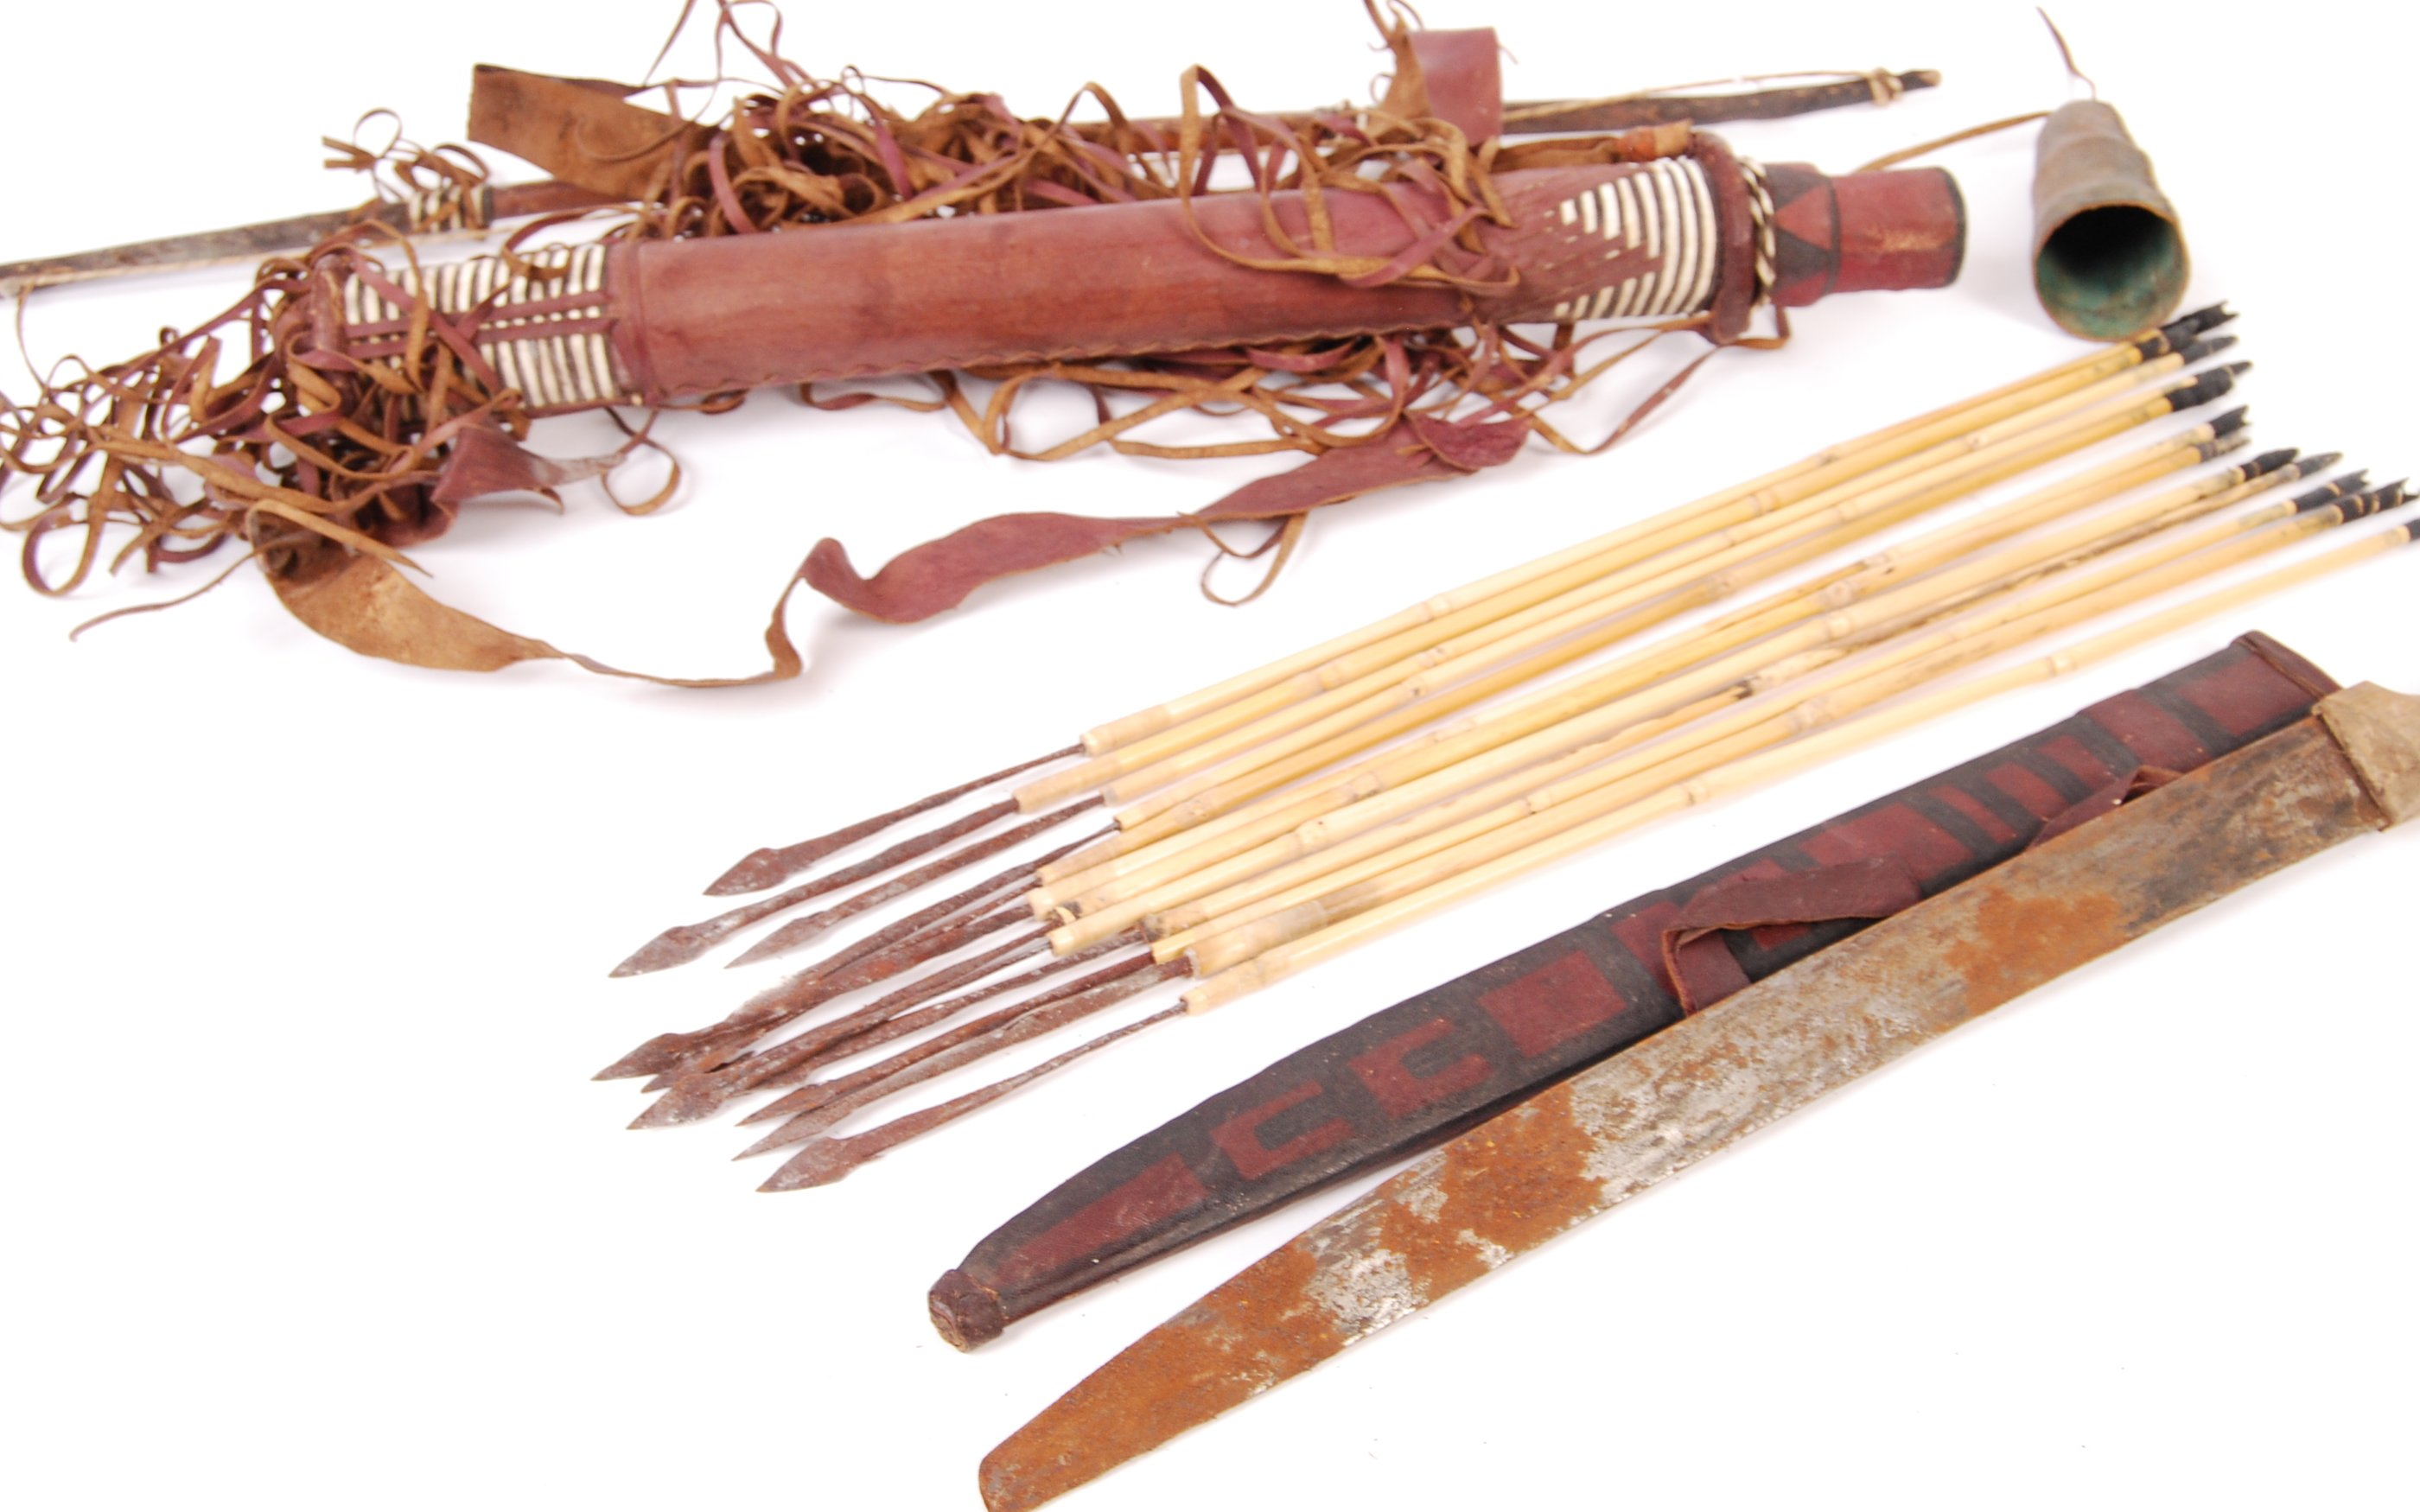 EARLY 20TH CENTURY AFRICAN TRIBAL QUIVER, BOW AND ARROWS - Image 2 of 4